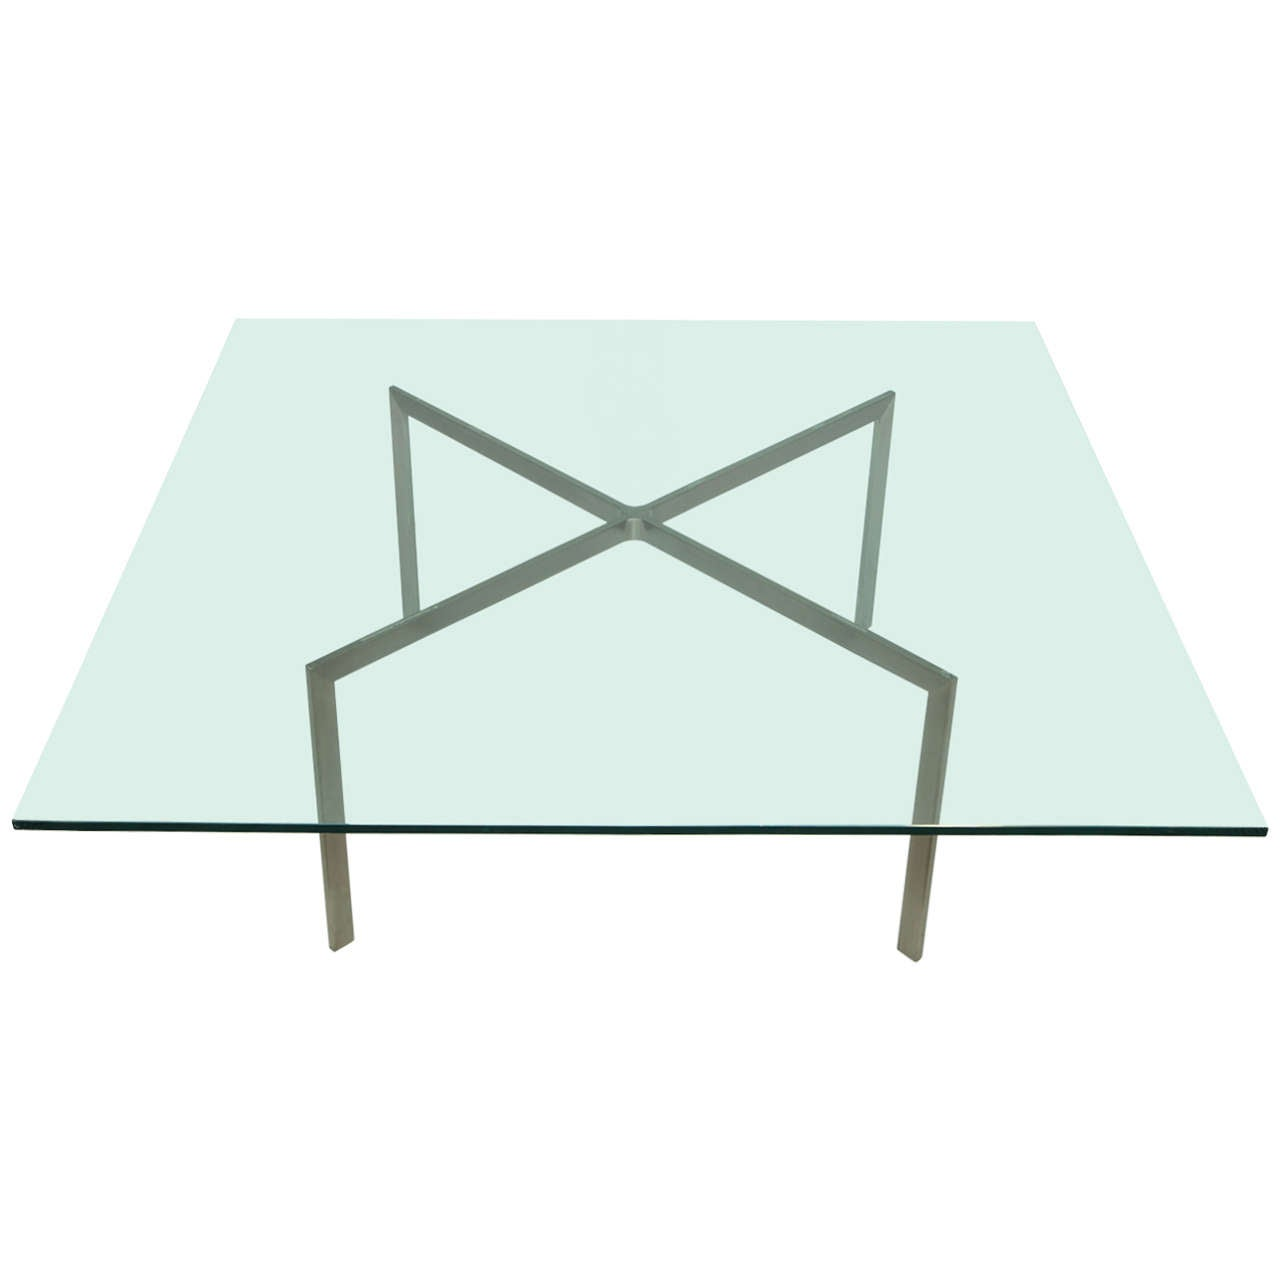 Nicos Zographos Steel and Glass Coffee Table